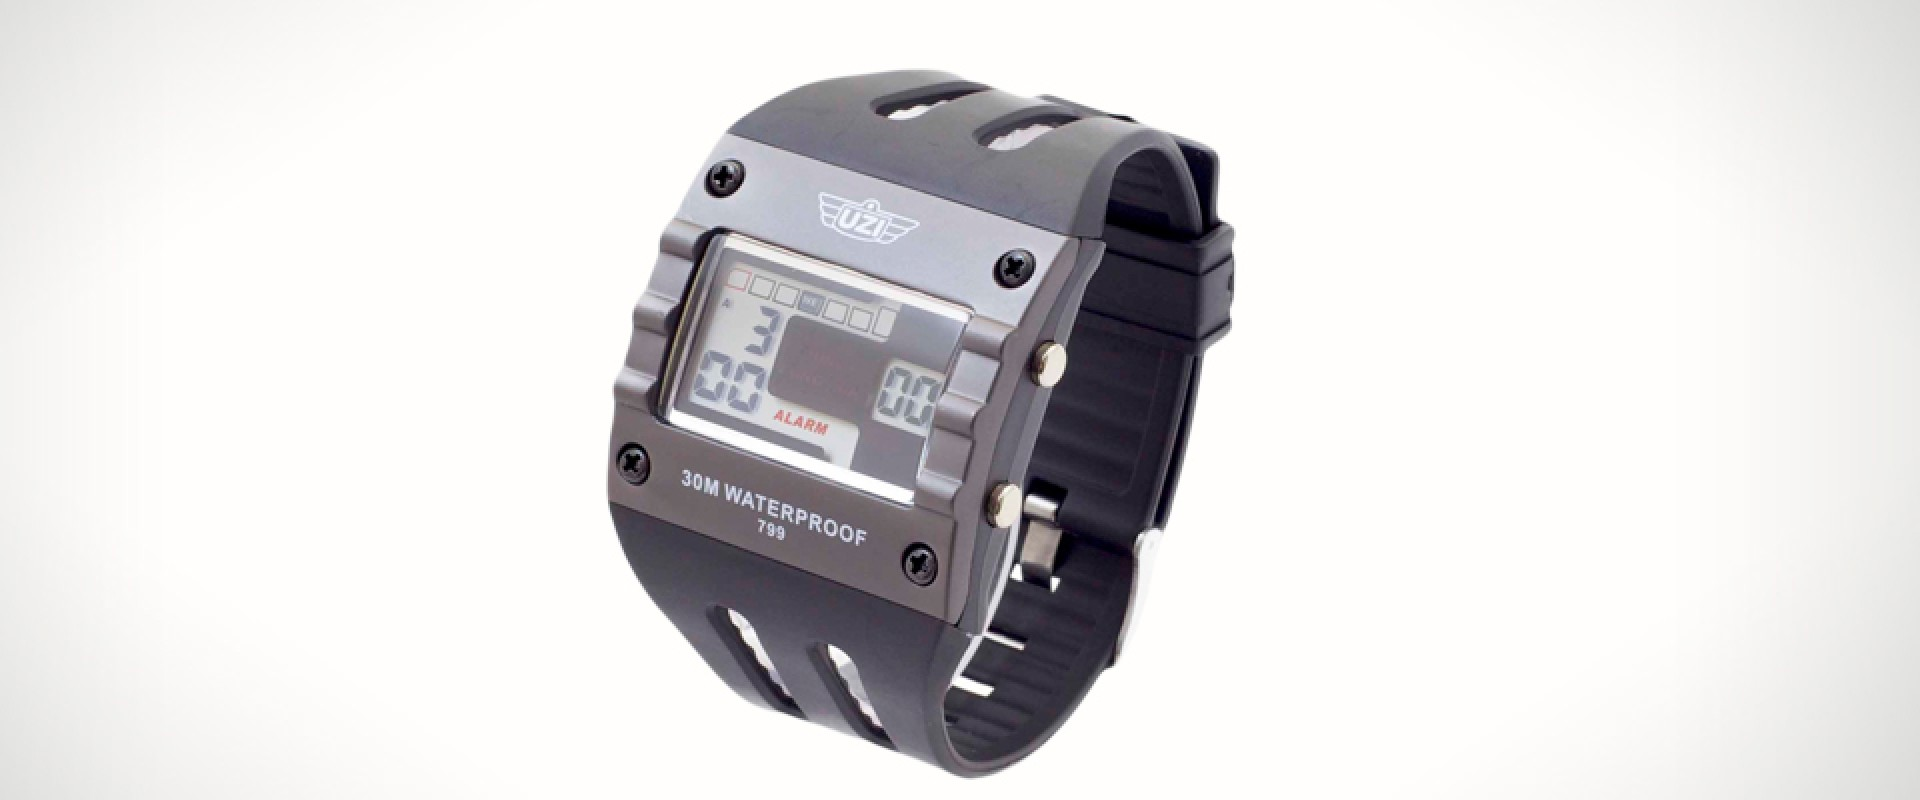 UZI Digital Watch 799